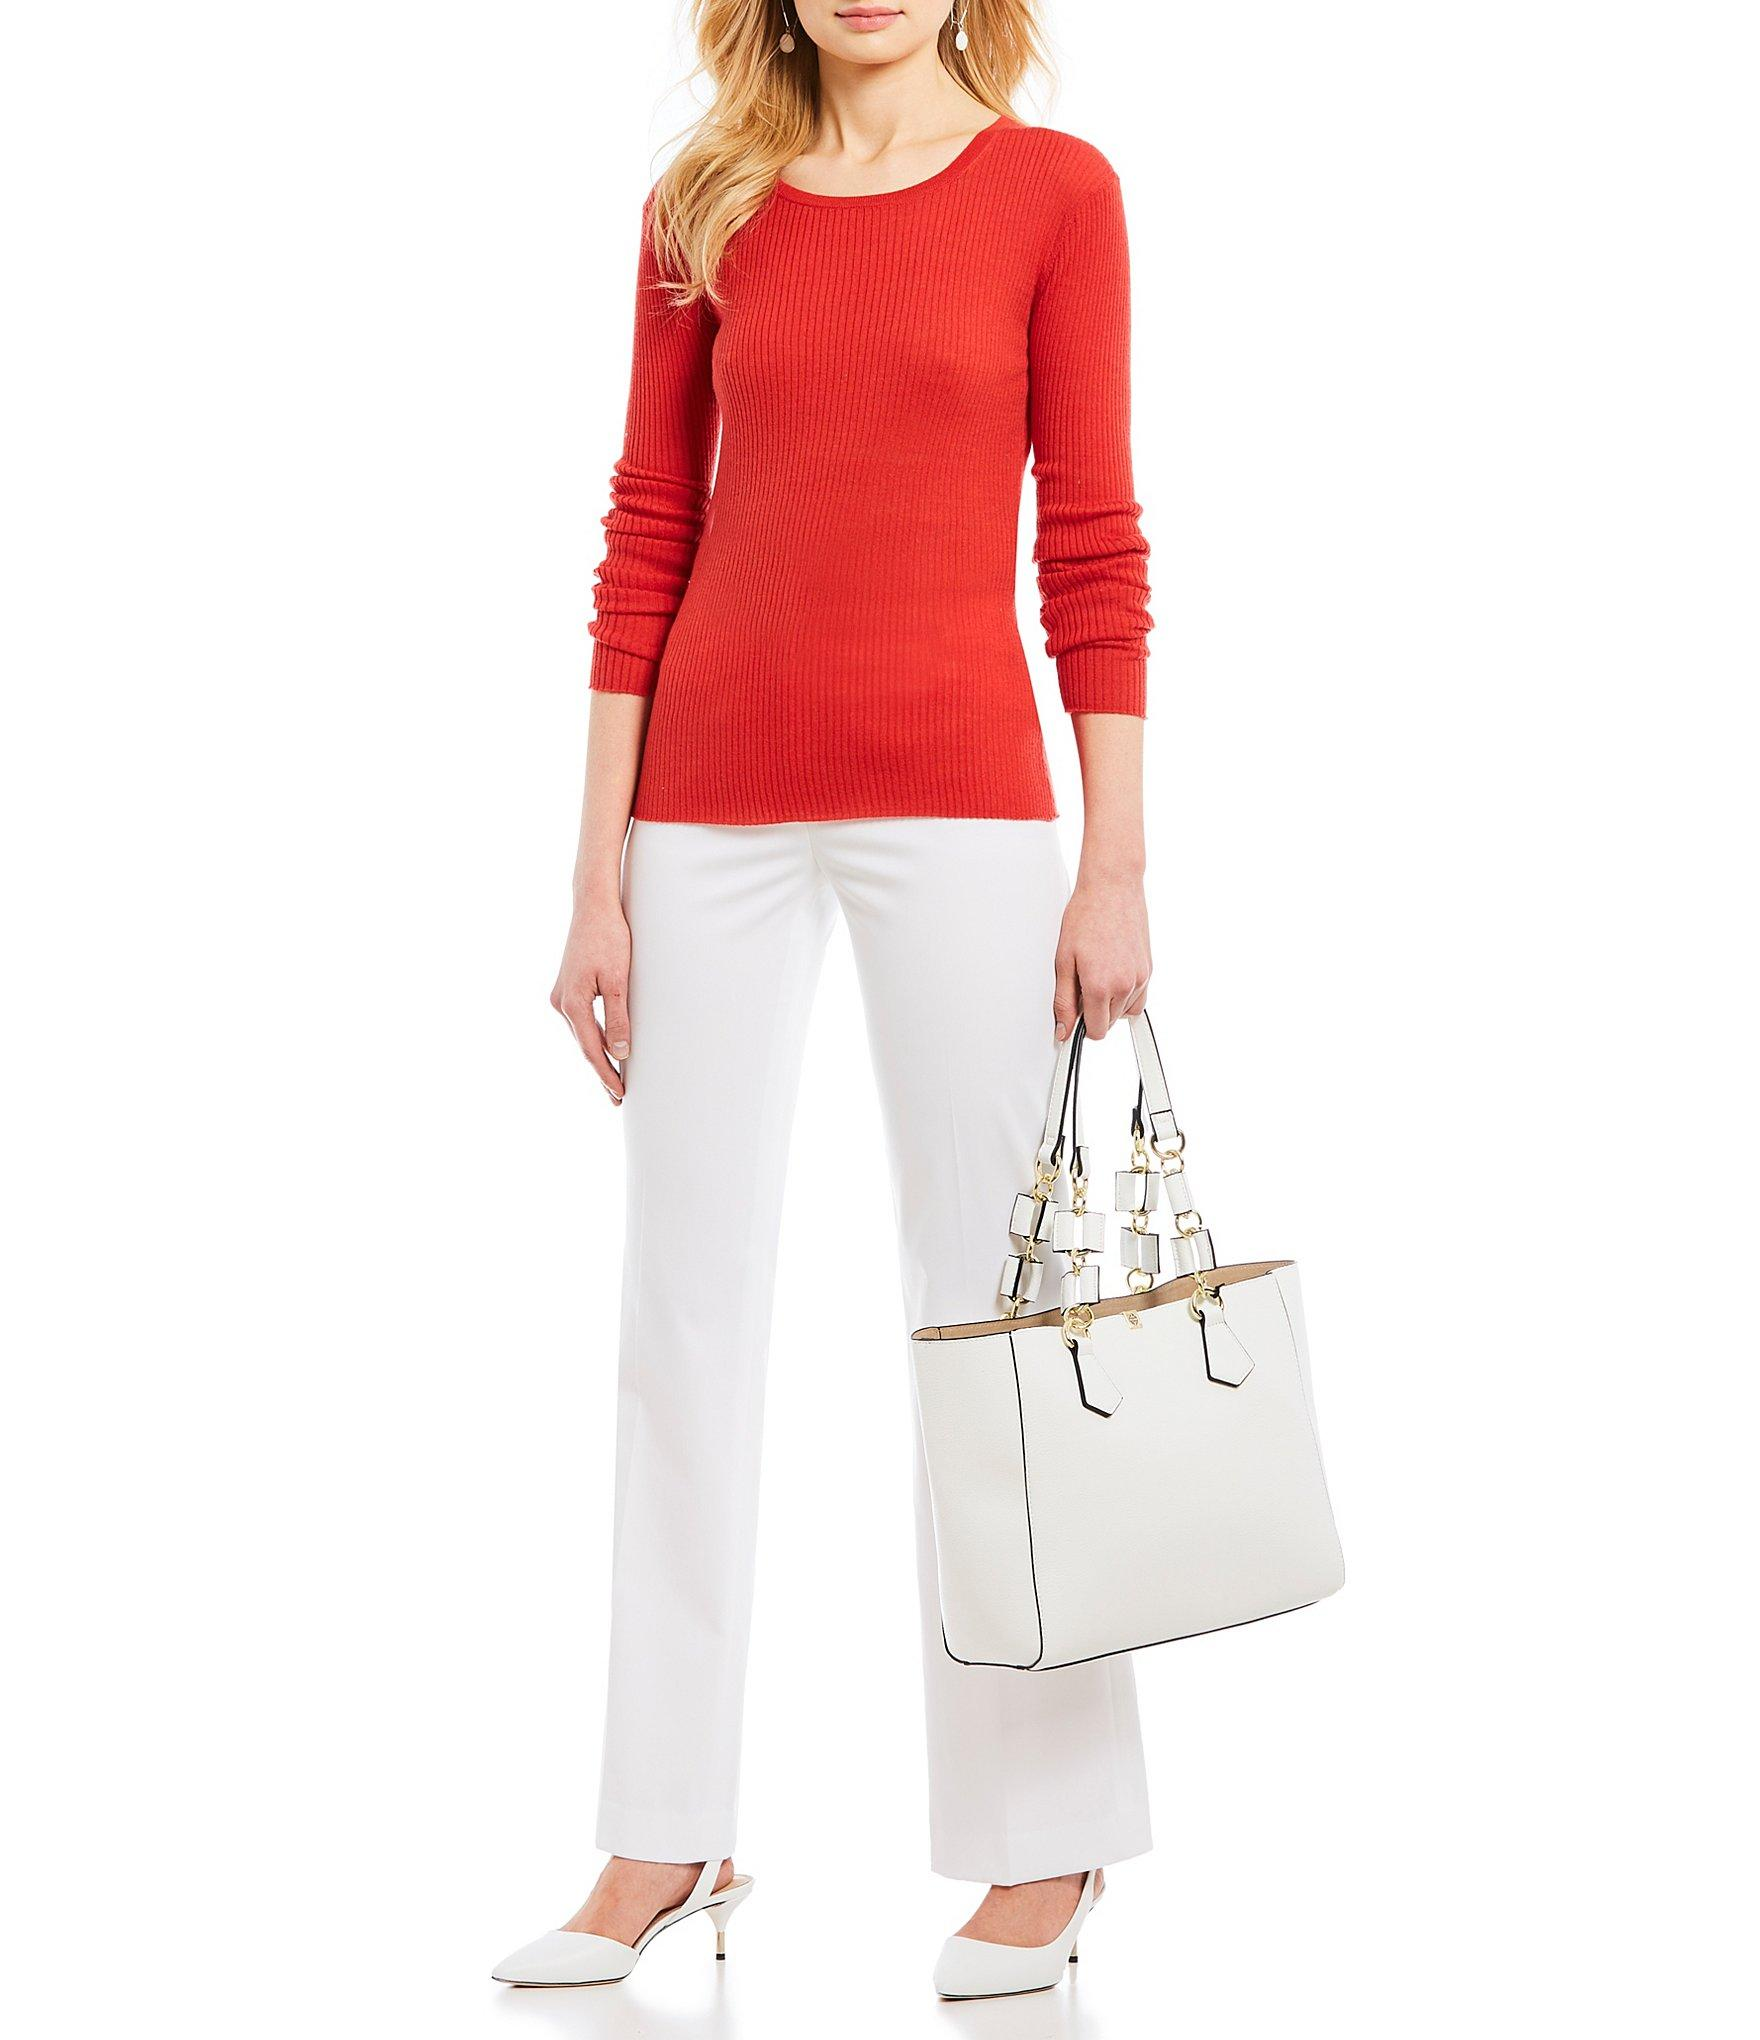 275a4996eaf Antonio Melani - Red Stephanie Long Sleeve Ribbed Knit Top - Lyst. View  fullscreen